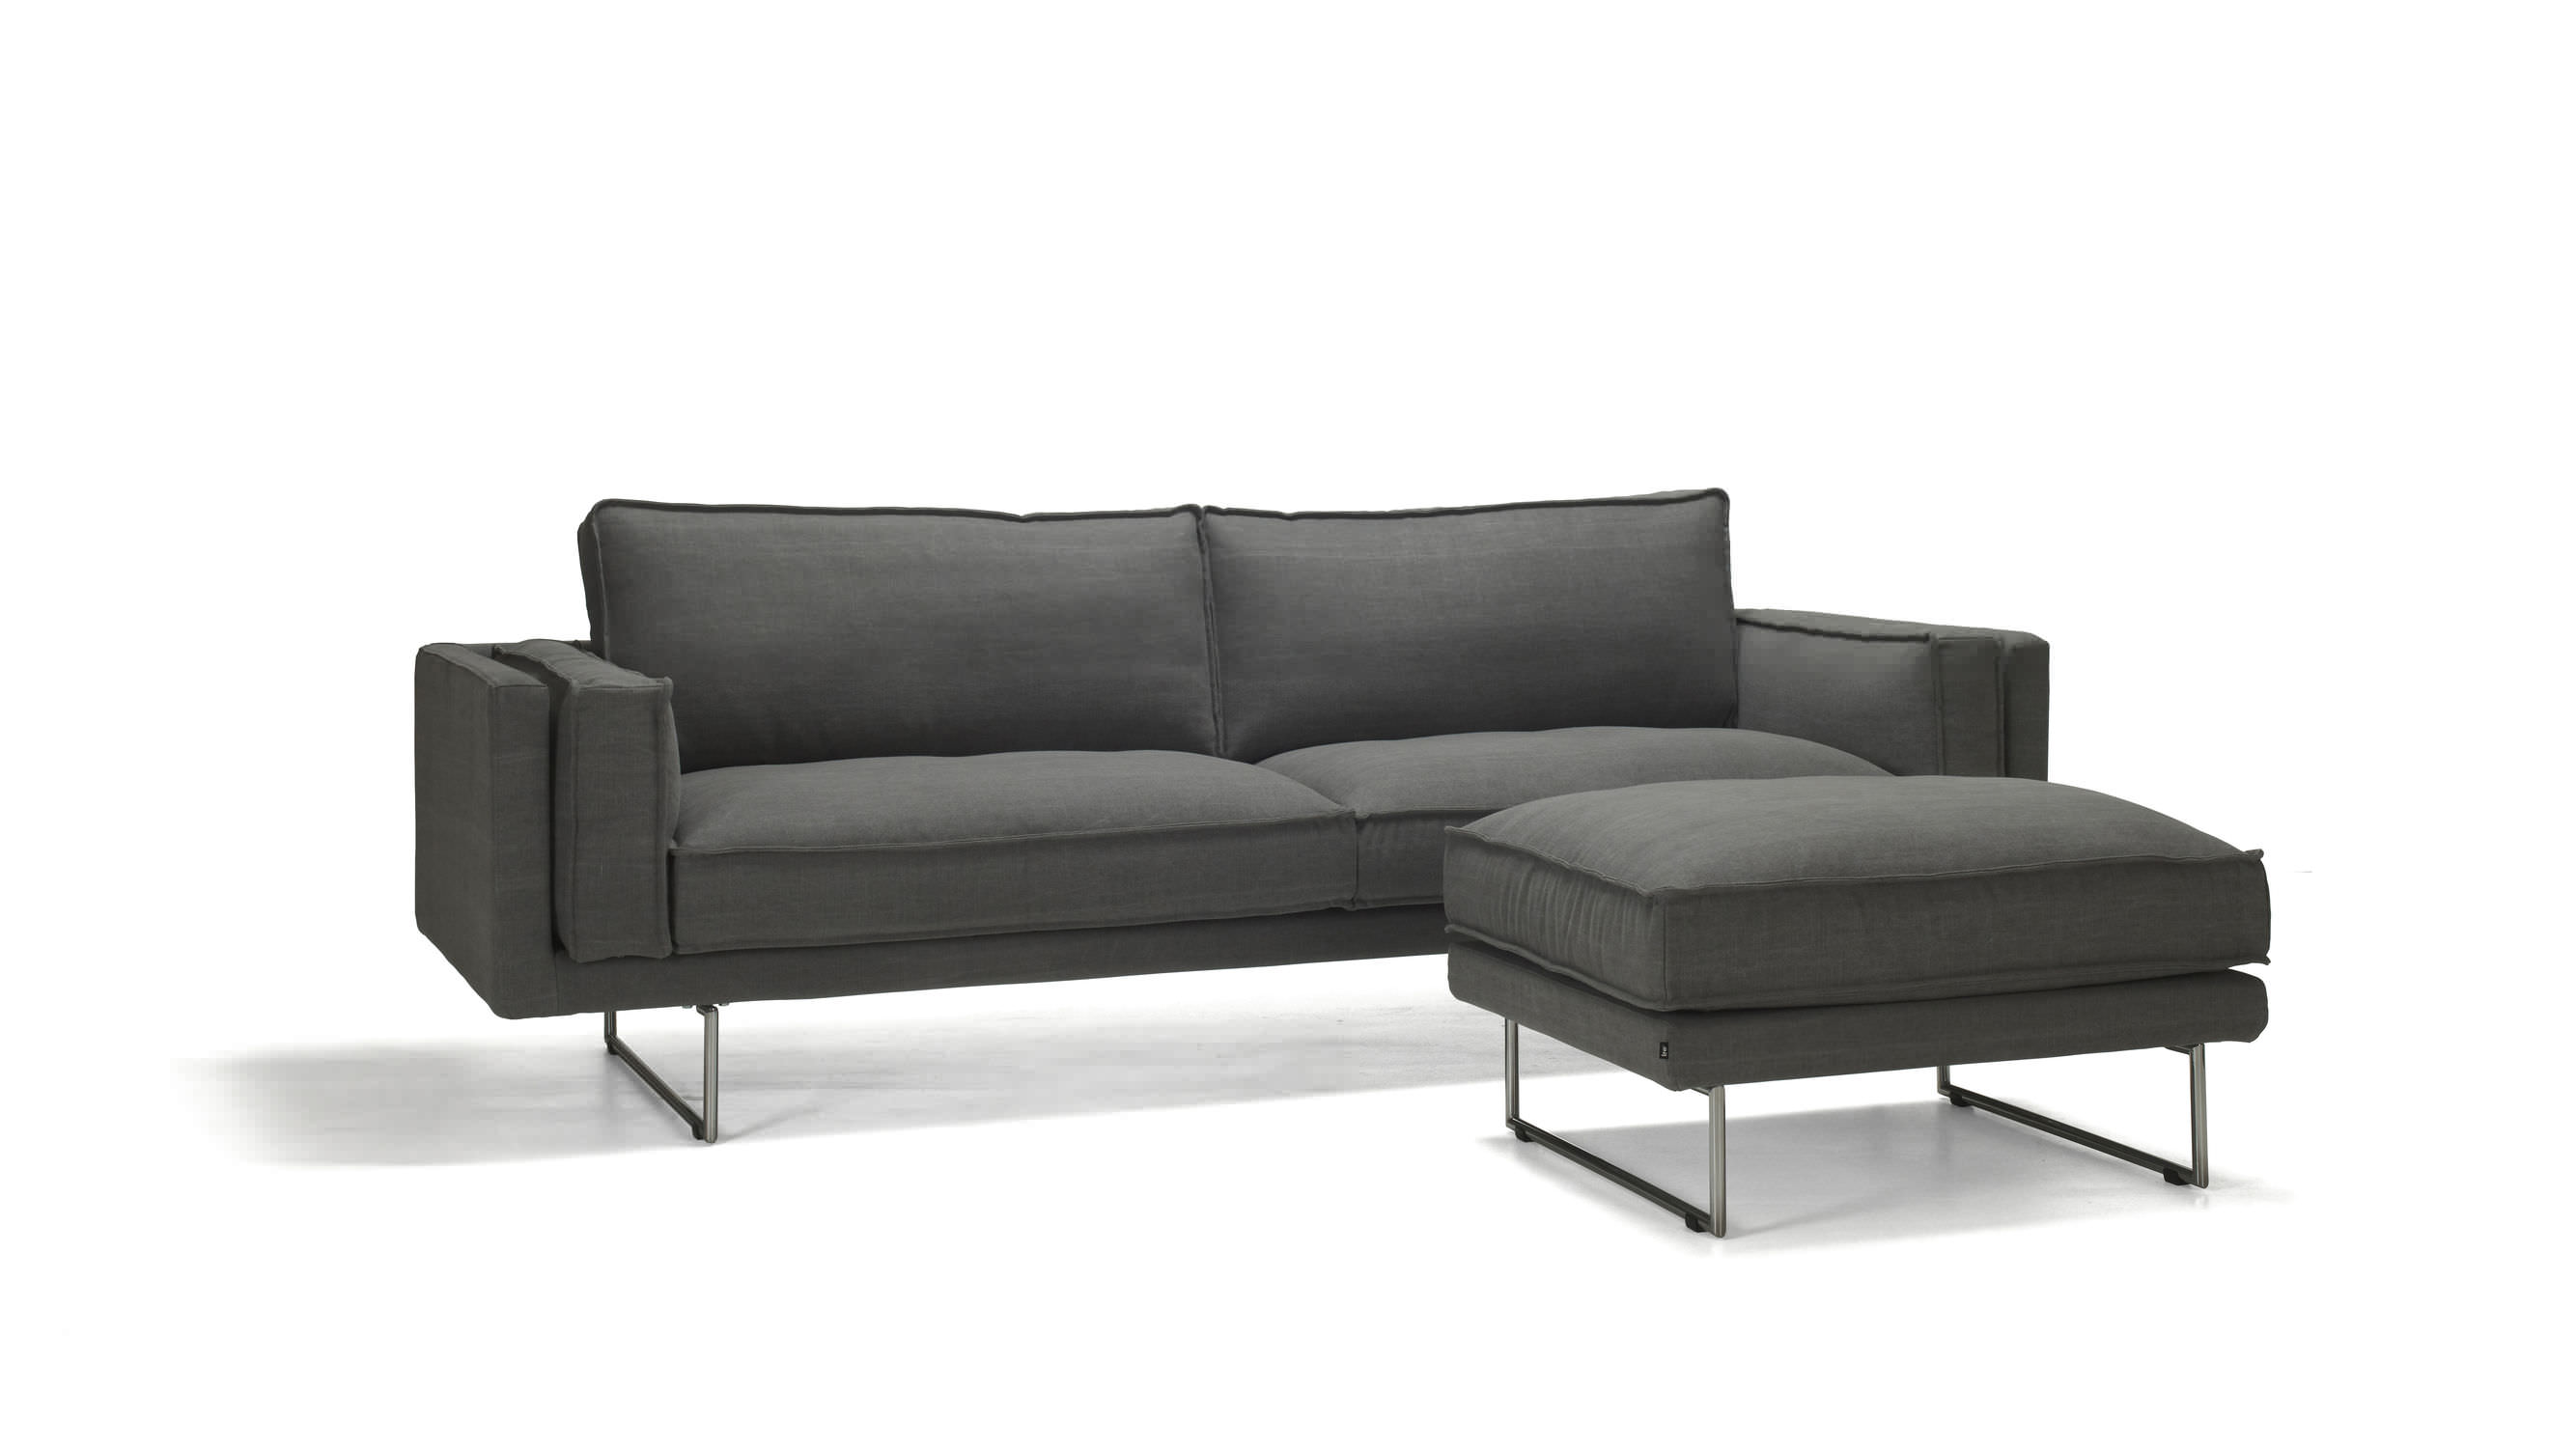 Naturmöbel Sofa Contemporary Sofa Fabric 3 Seater With Footrest Altero By